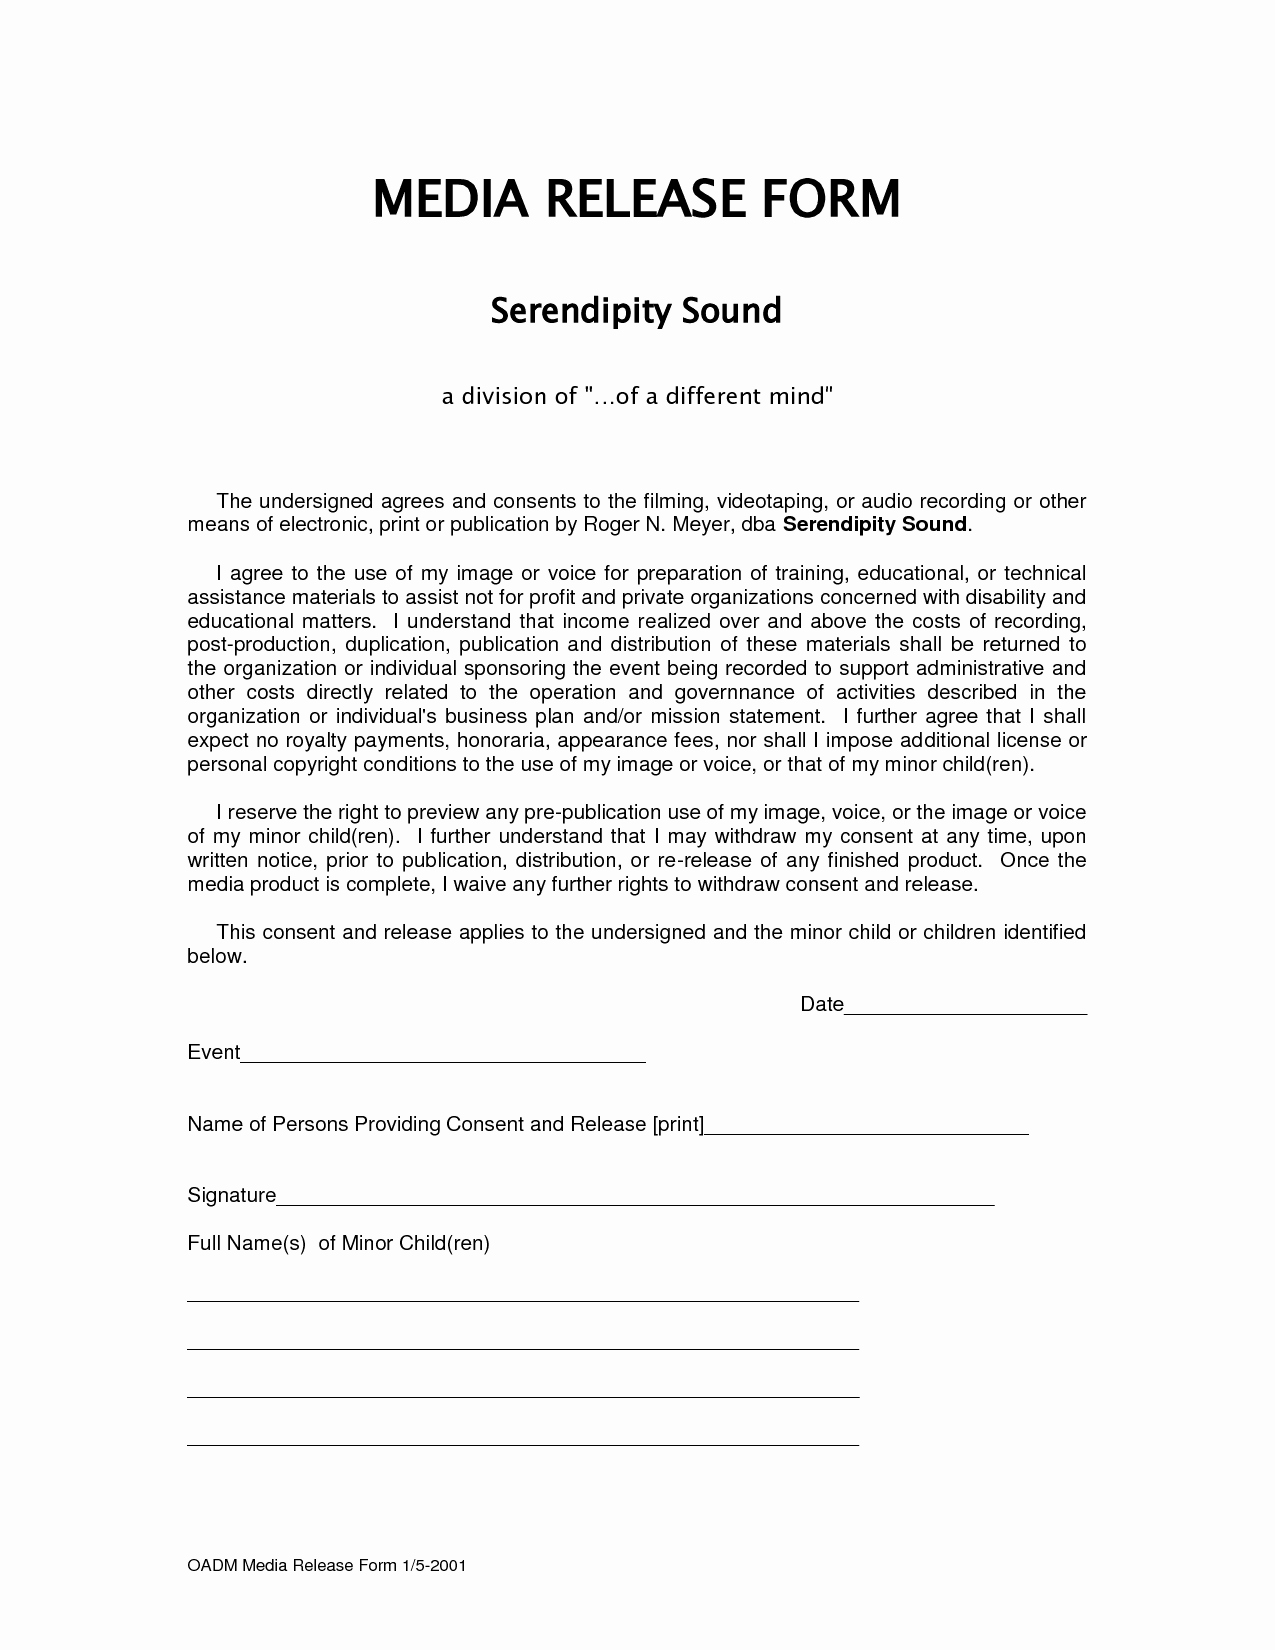 Media Release form Template Beautiful form Media Release form